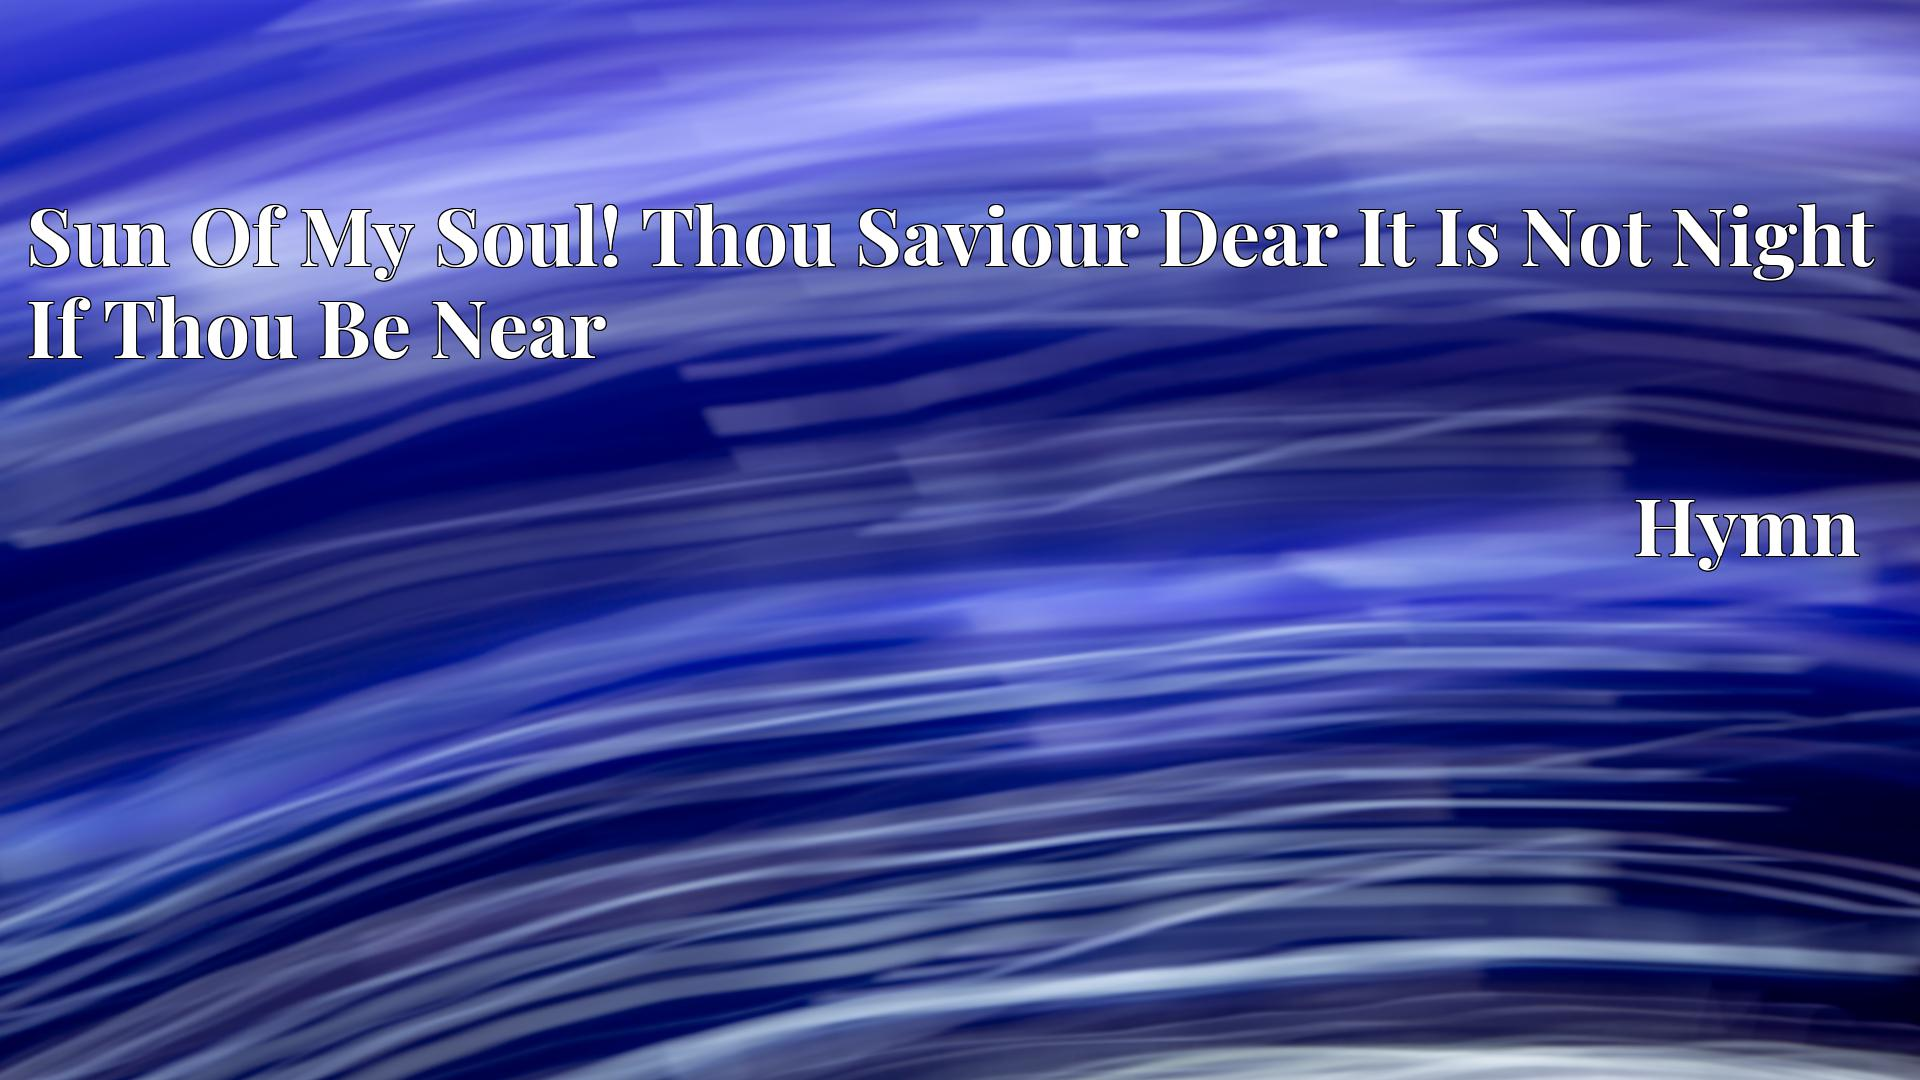 Sun Of My Soul! Thou Saviour Dear It Is Not Night If Thou Be Near - Hymn